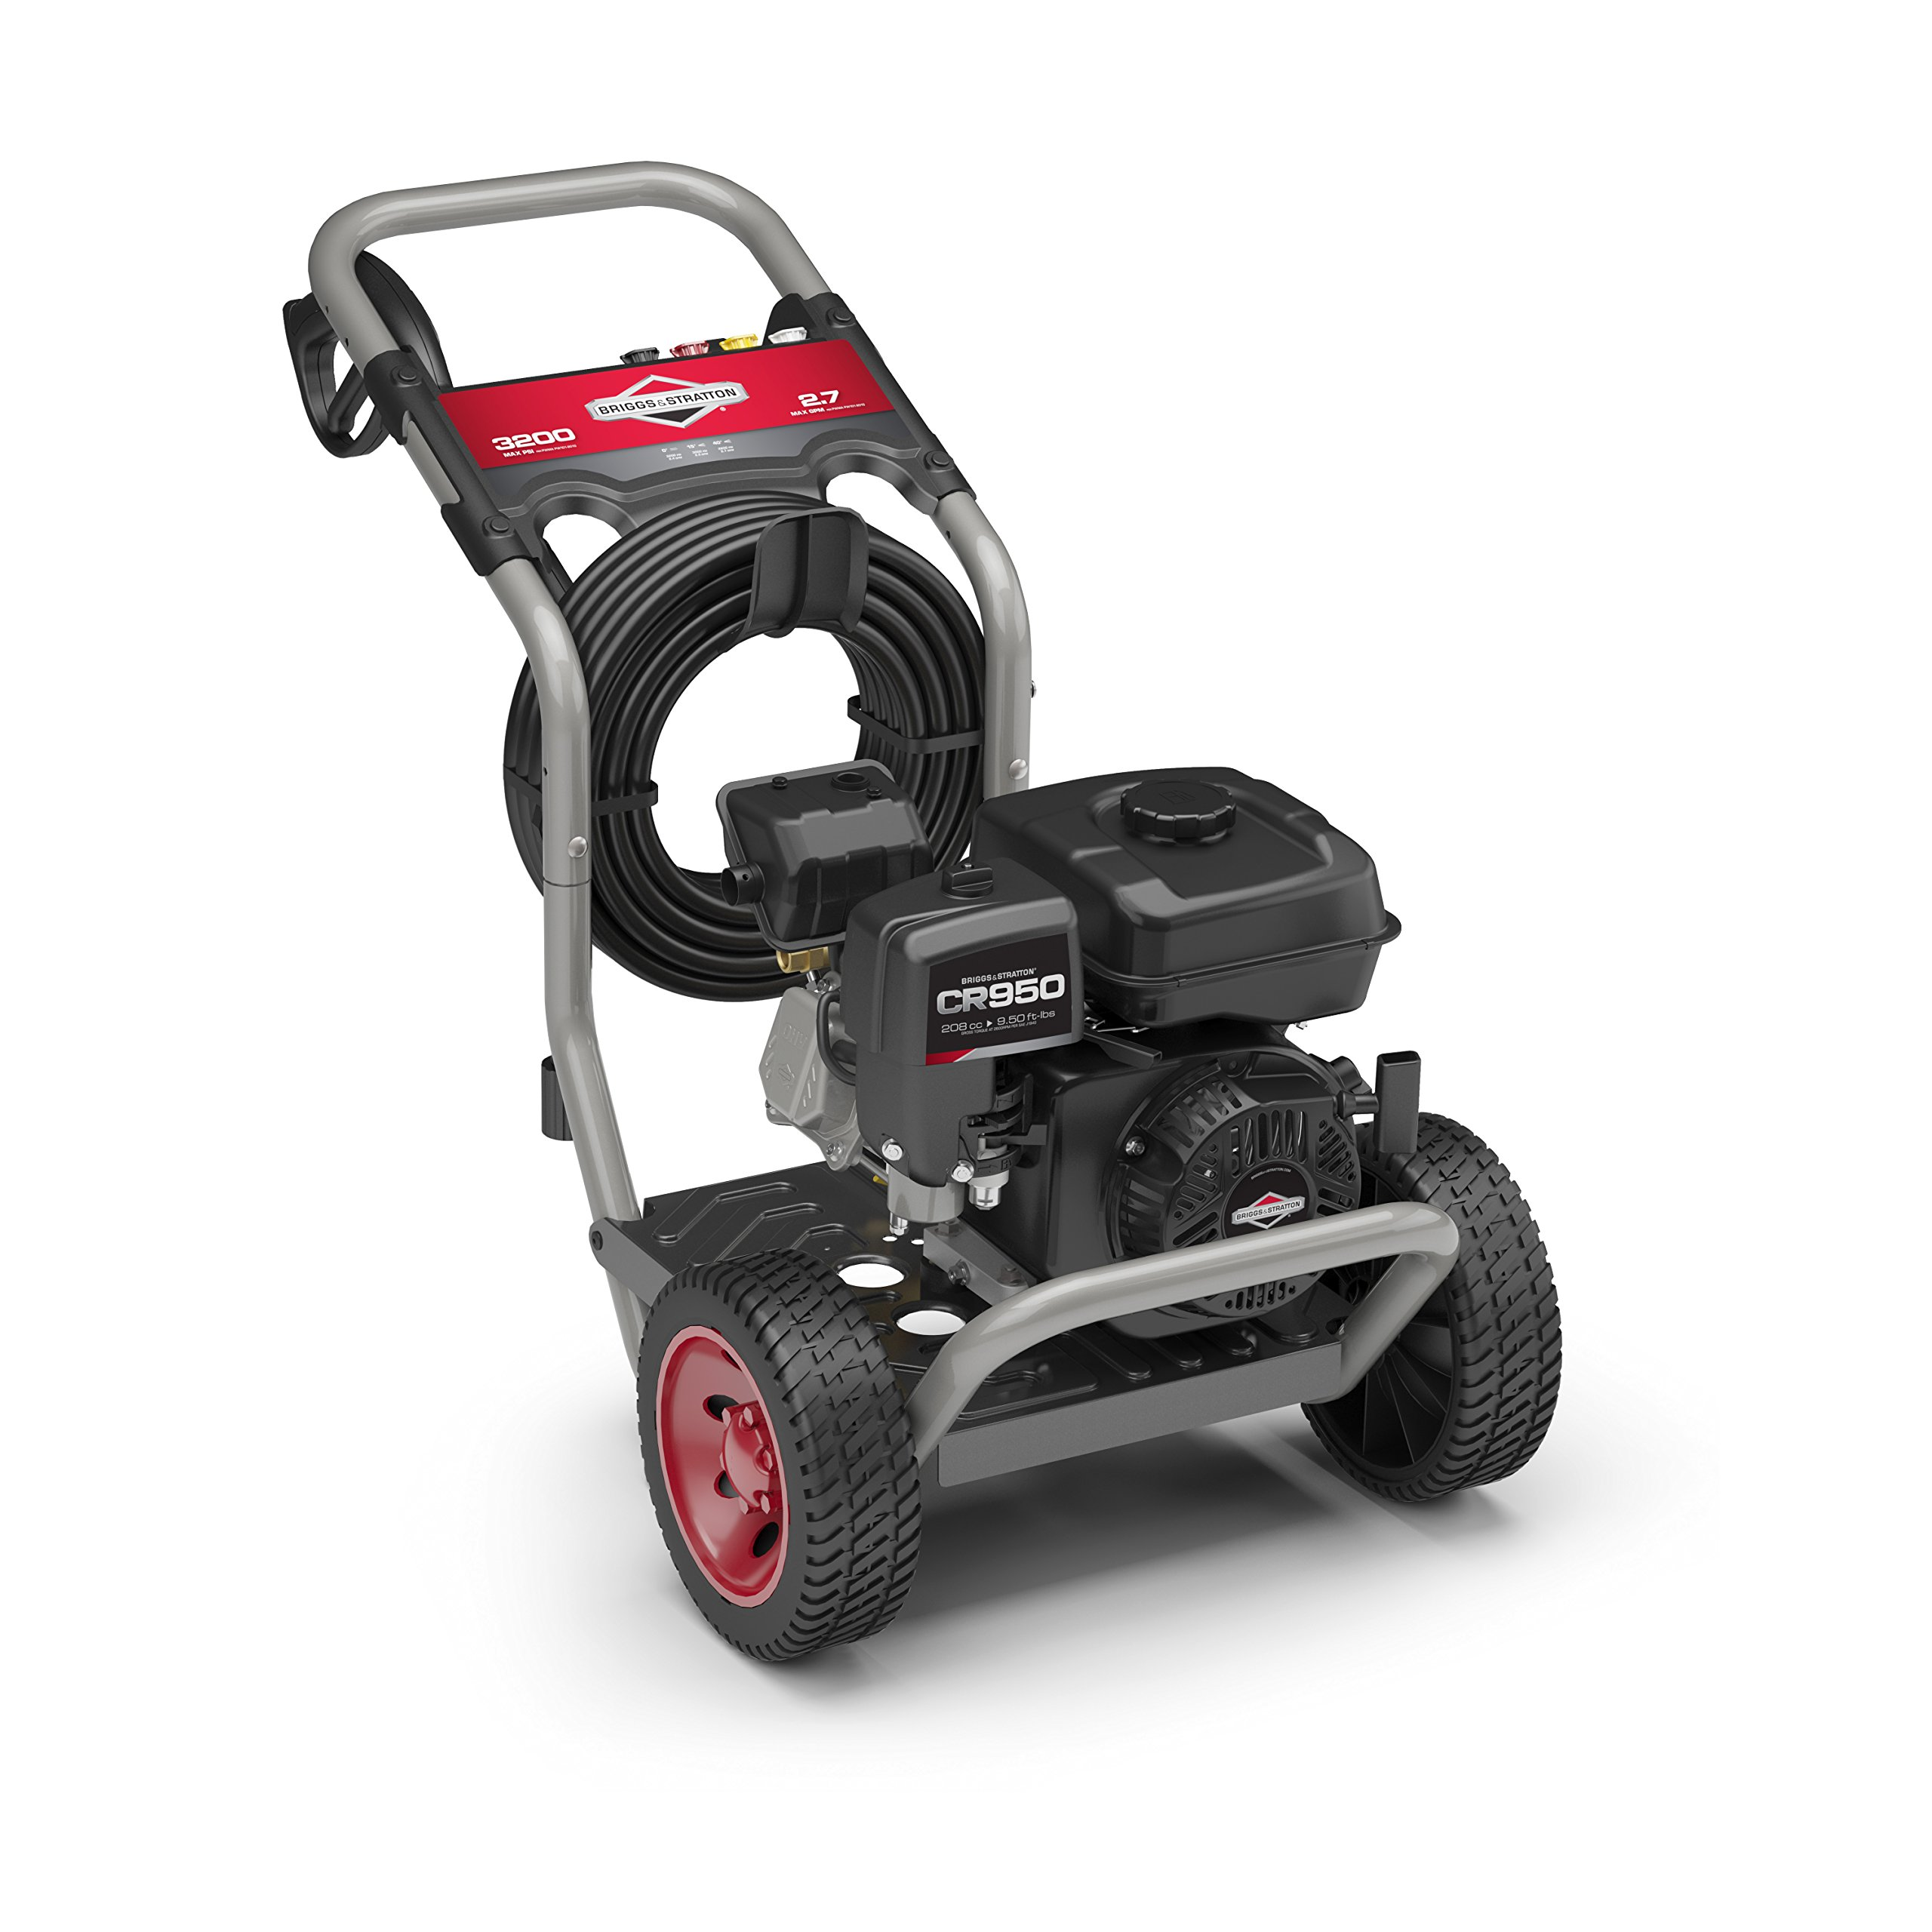 briggs-stratton-20655-gas-3200-psi-2.7-gpm-208cc-ohv-easy-start-technology-carb-compliant-best-commercial-pressure-washers-reviews